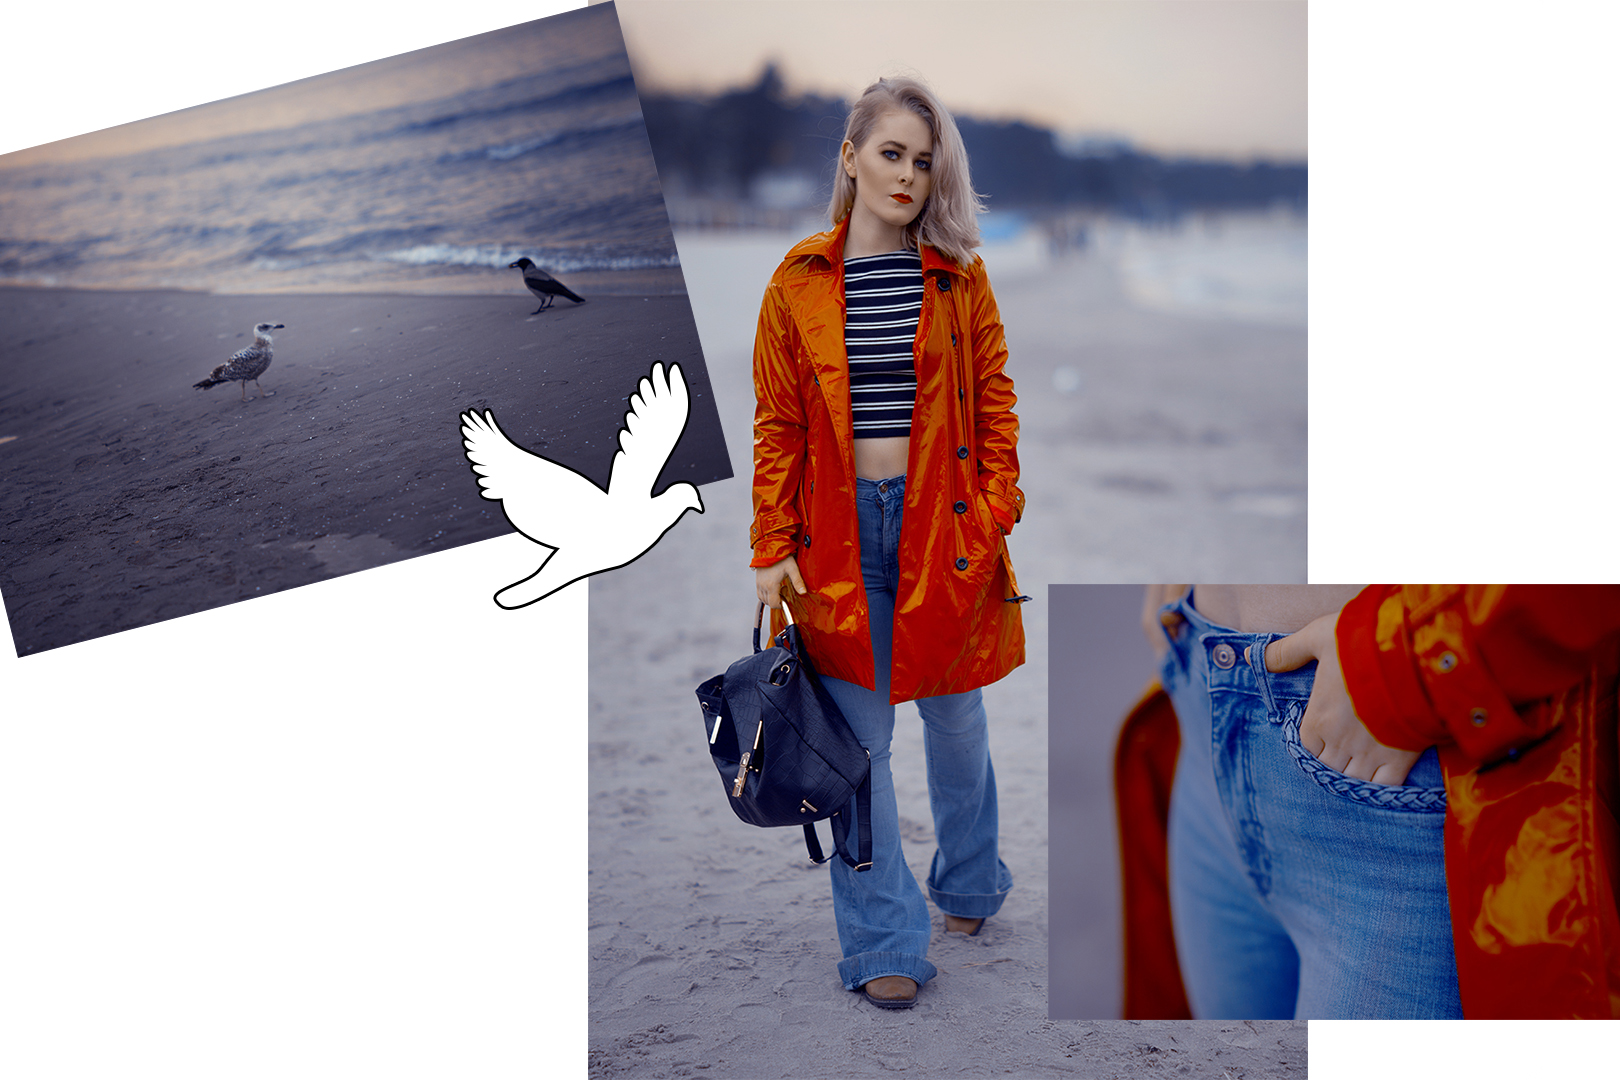 great fashion look with striking colours - great fashion look by Christina Key